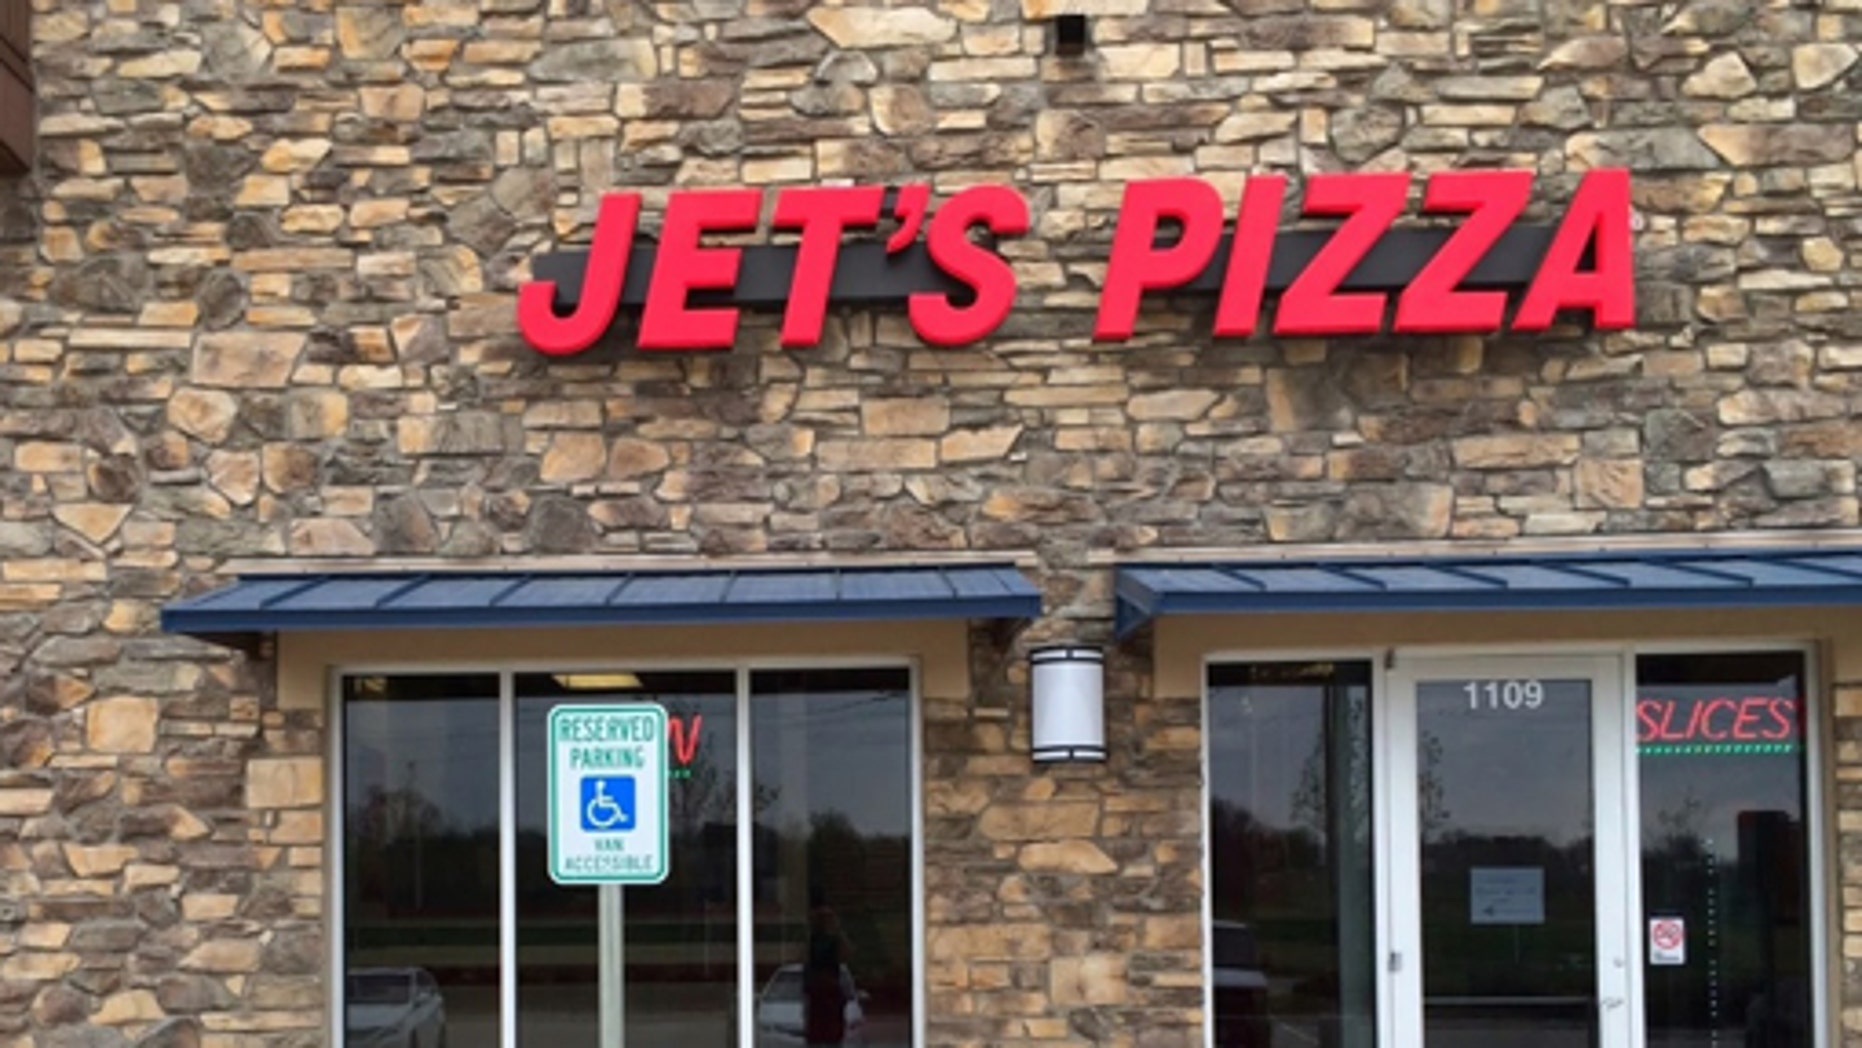 A Texas teen was fired over twitter by the manager of Jet's Pizza in Mansfield, Texas after she tweeted out how she was not looking forward to working there. (Google Maps)